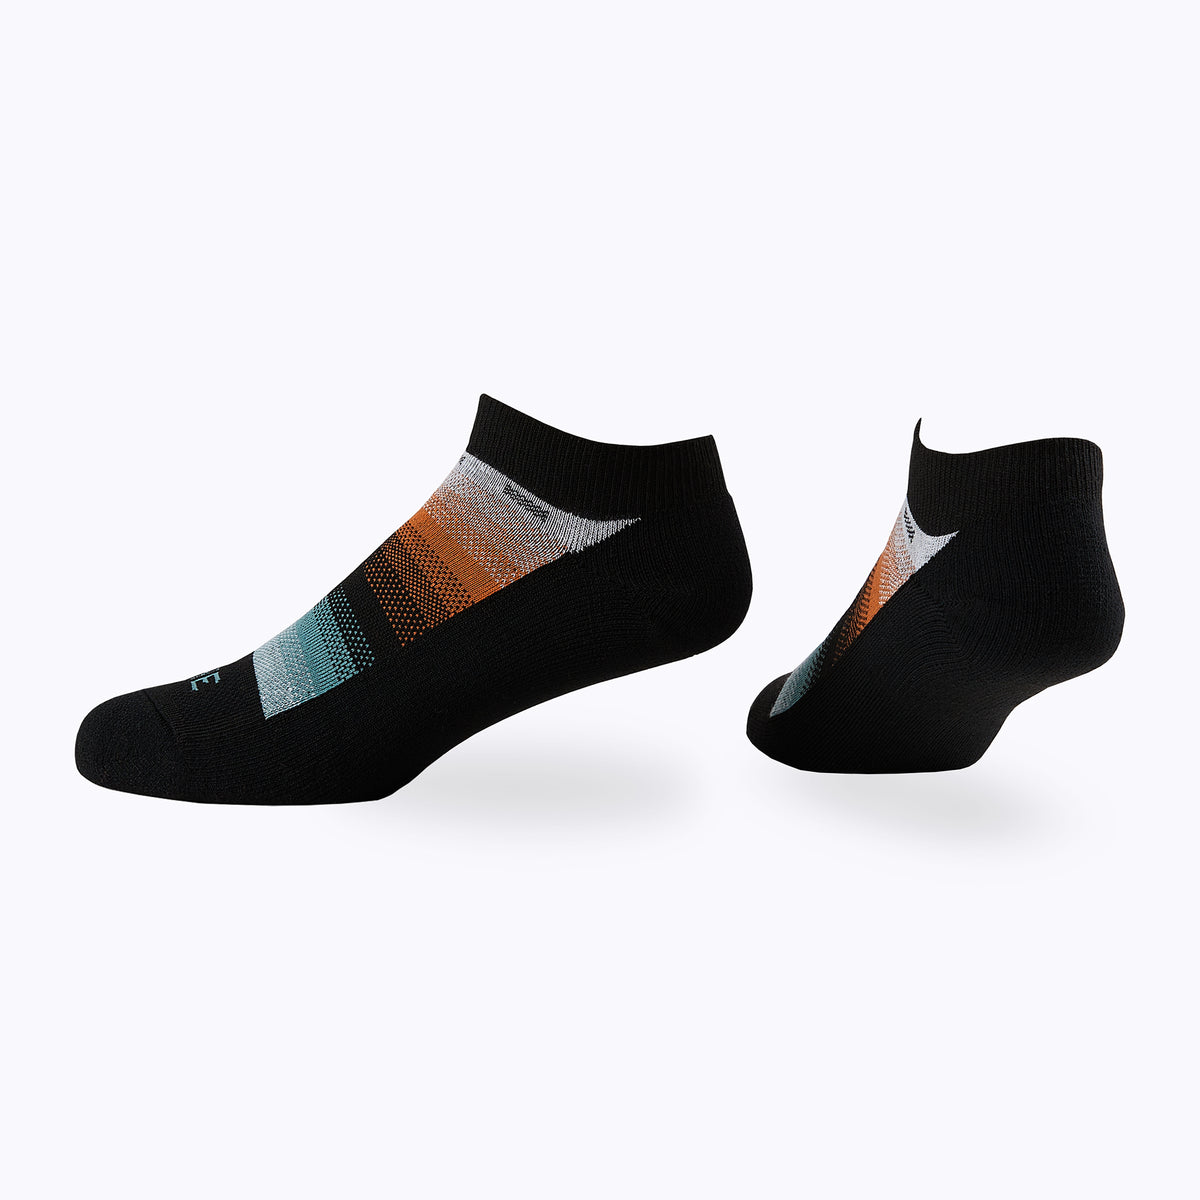 Serape 3 Pack Women's Ankle Socks -  by Canyon x Lane Socks